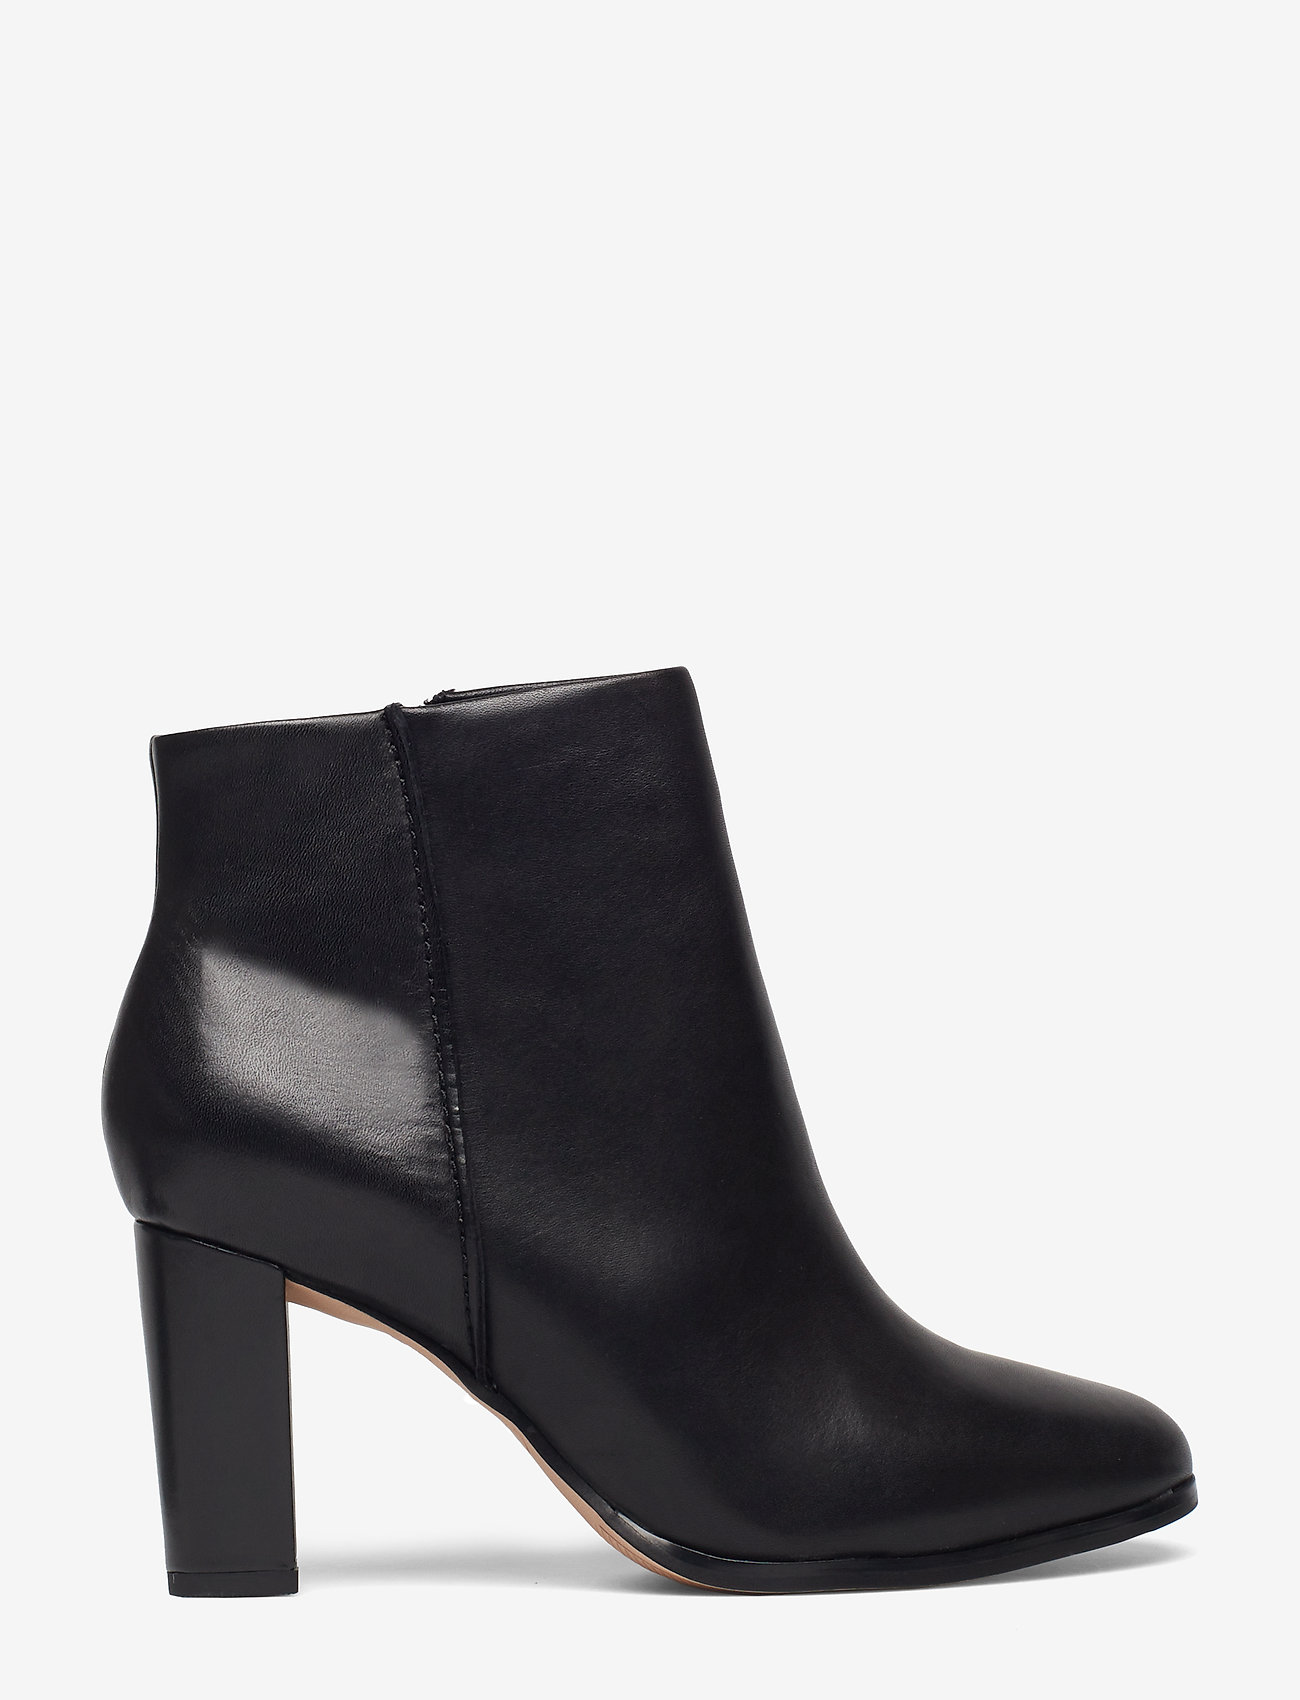 Clarks - Kaylin Fern - ankelboots med klack - black leather - 1